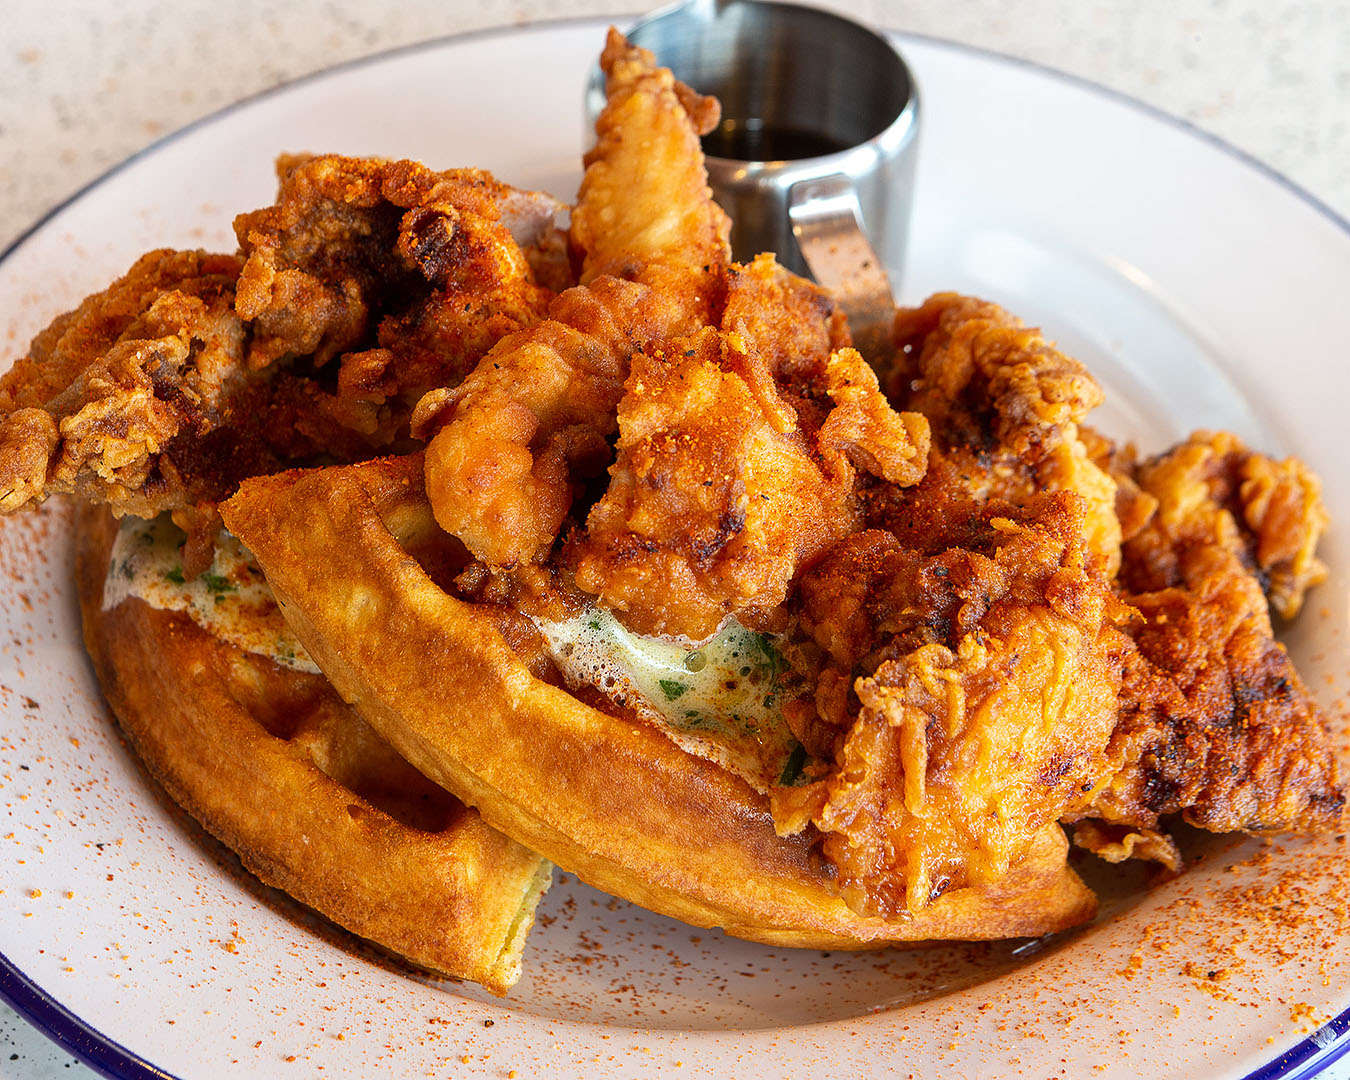 Chicken and waffles at Peach's hot chicken.